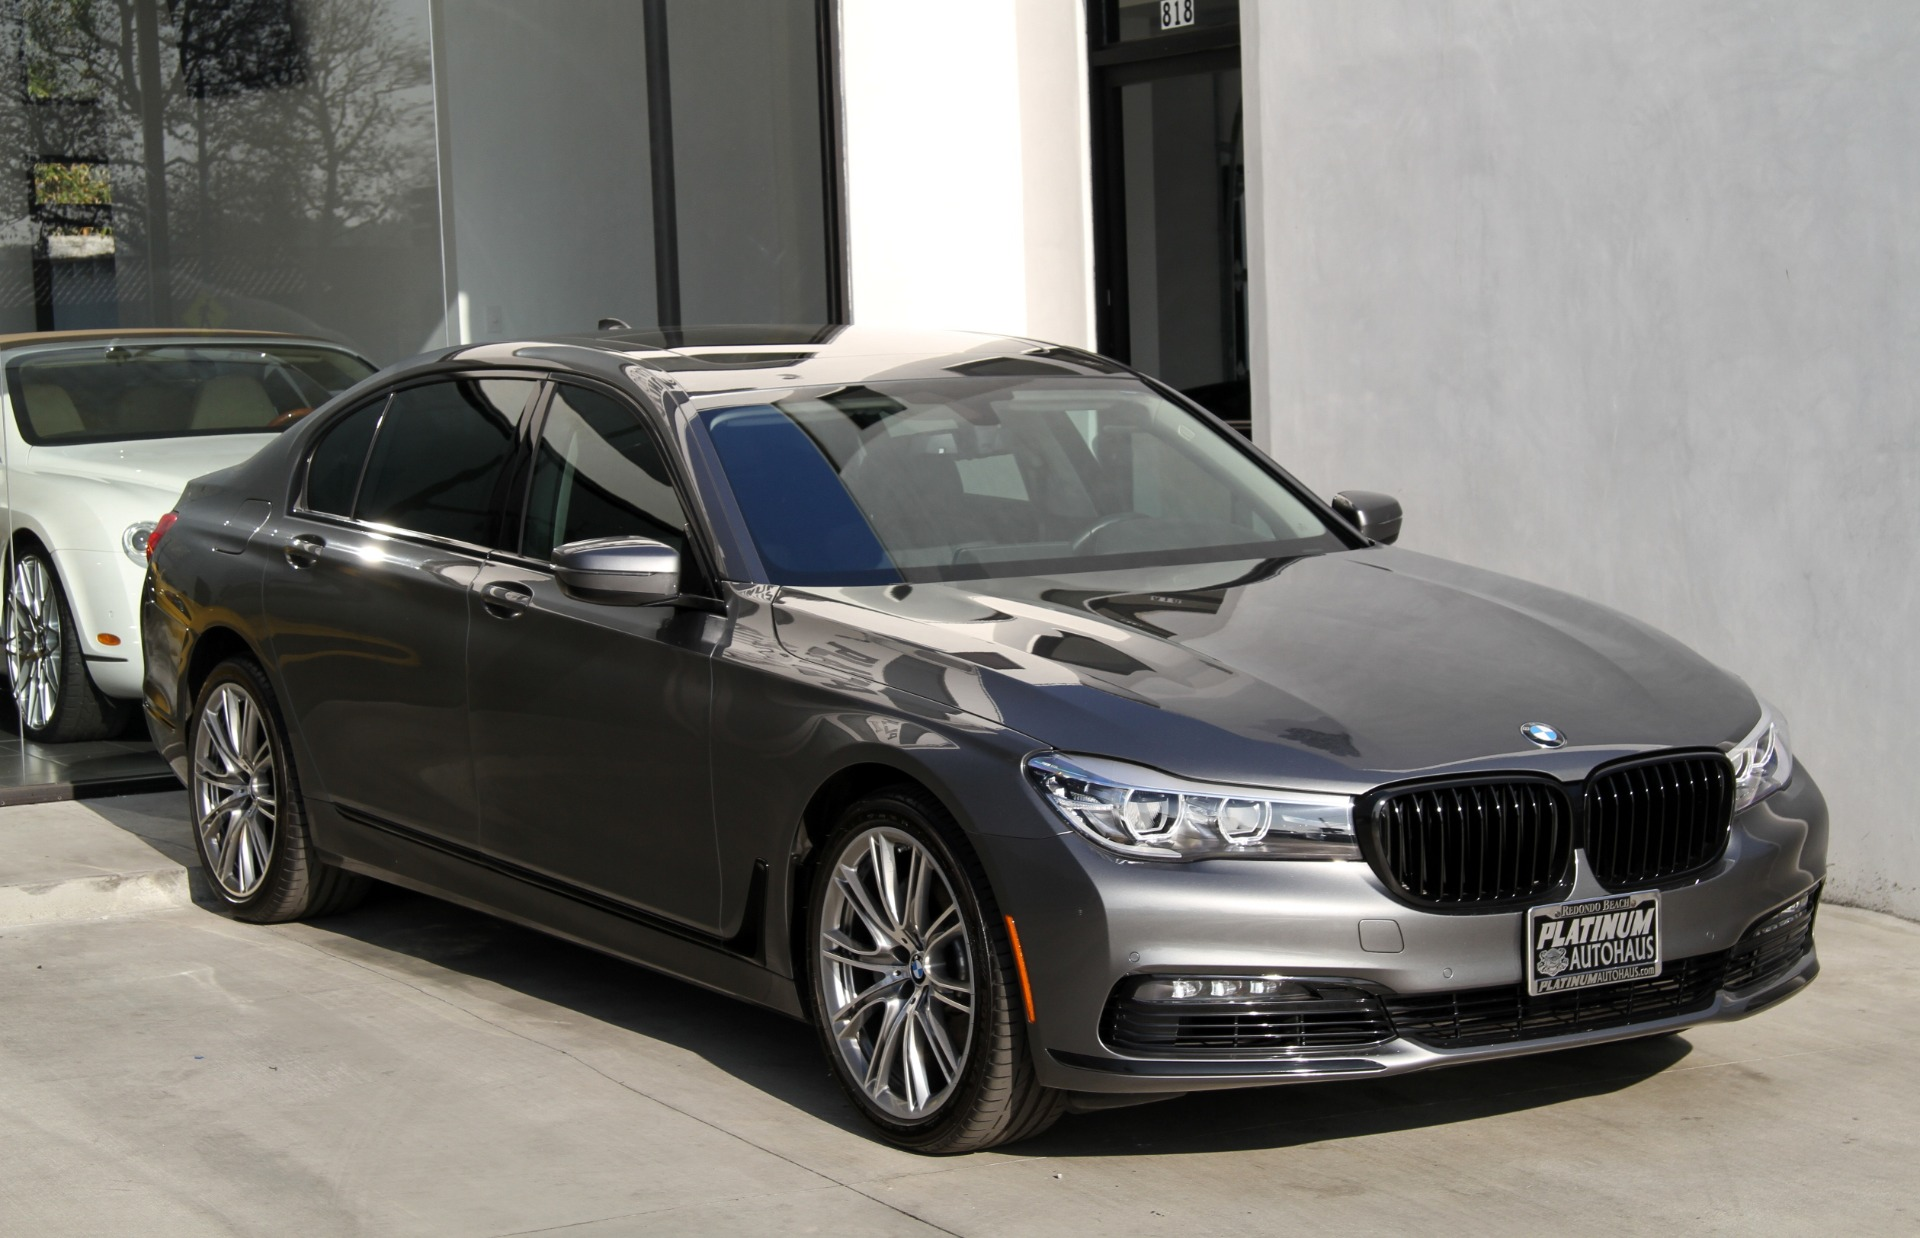 Vehicles For Sale Near Me >> 2016 BMW 7 Series 740i Stock # 6074 for sale near Redondo Beach, CA | CA BMW Dealer